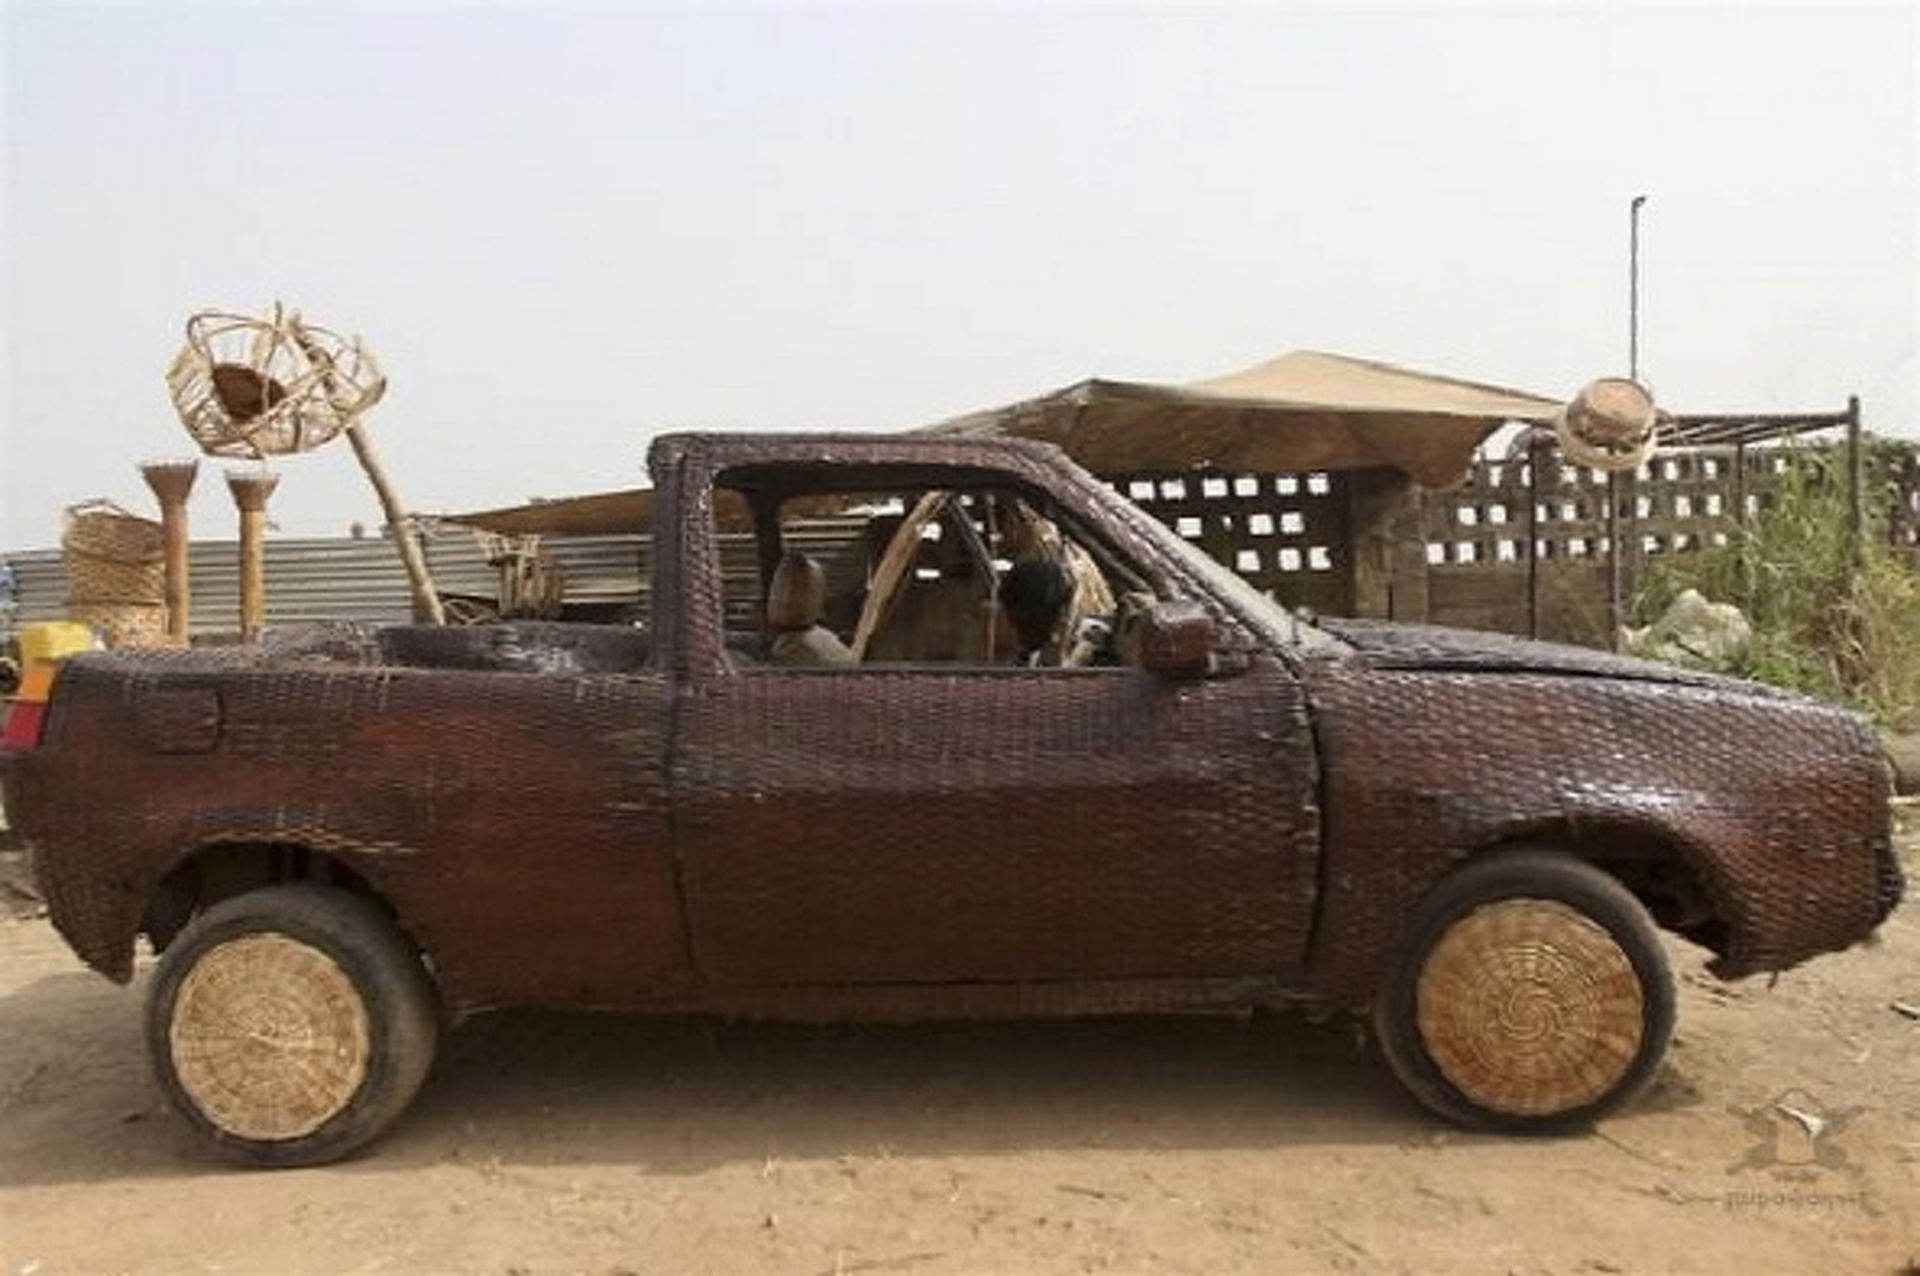 This Wicker Car Seems Unsafe, Flammable